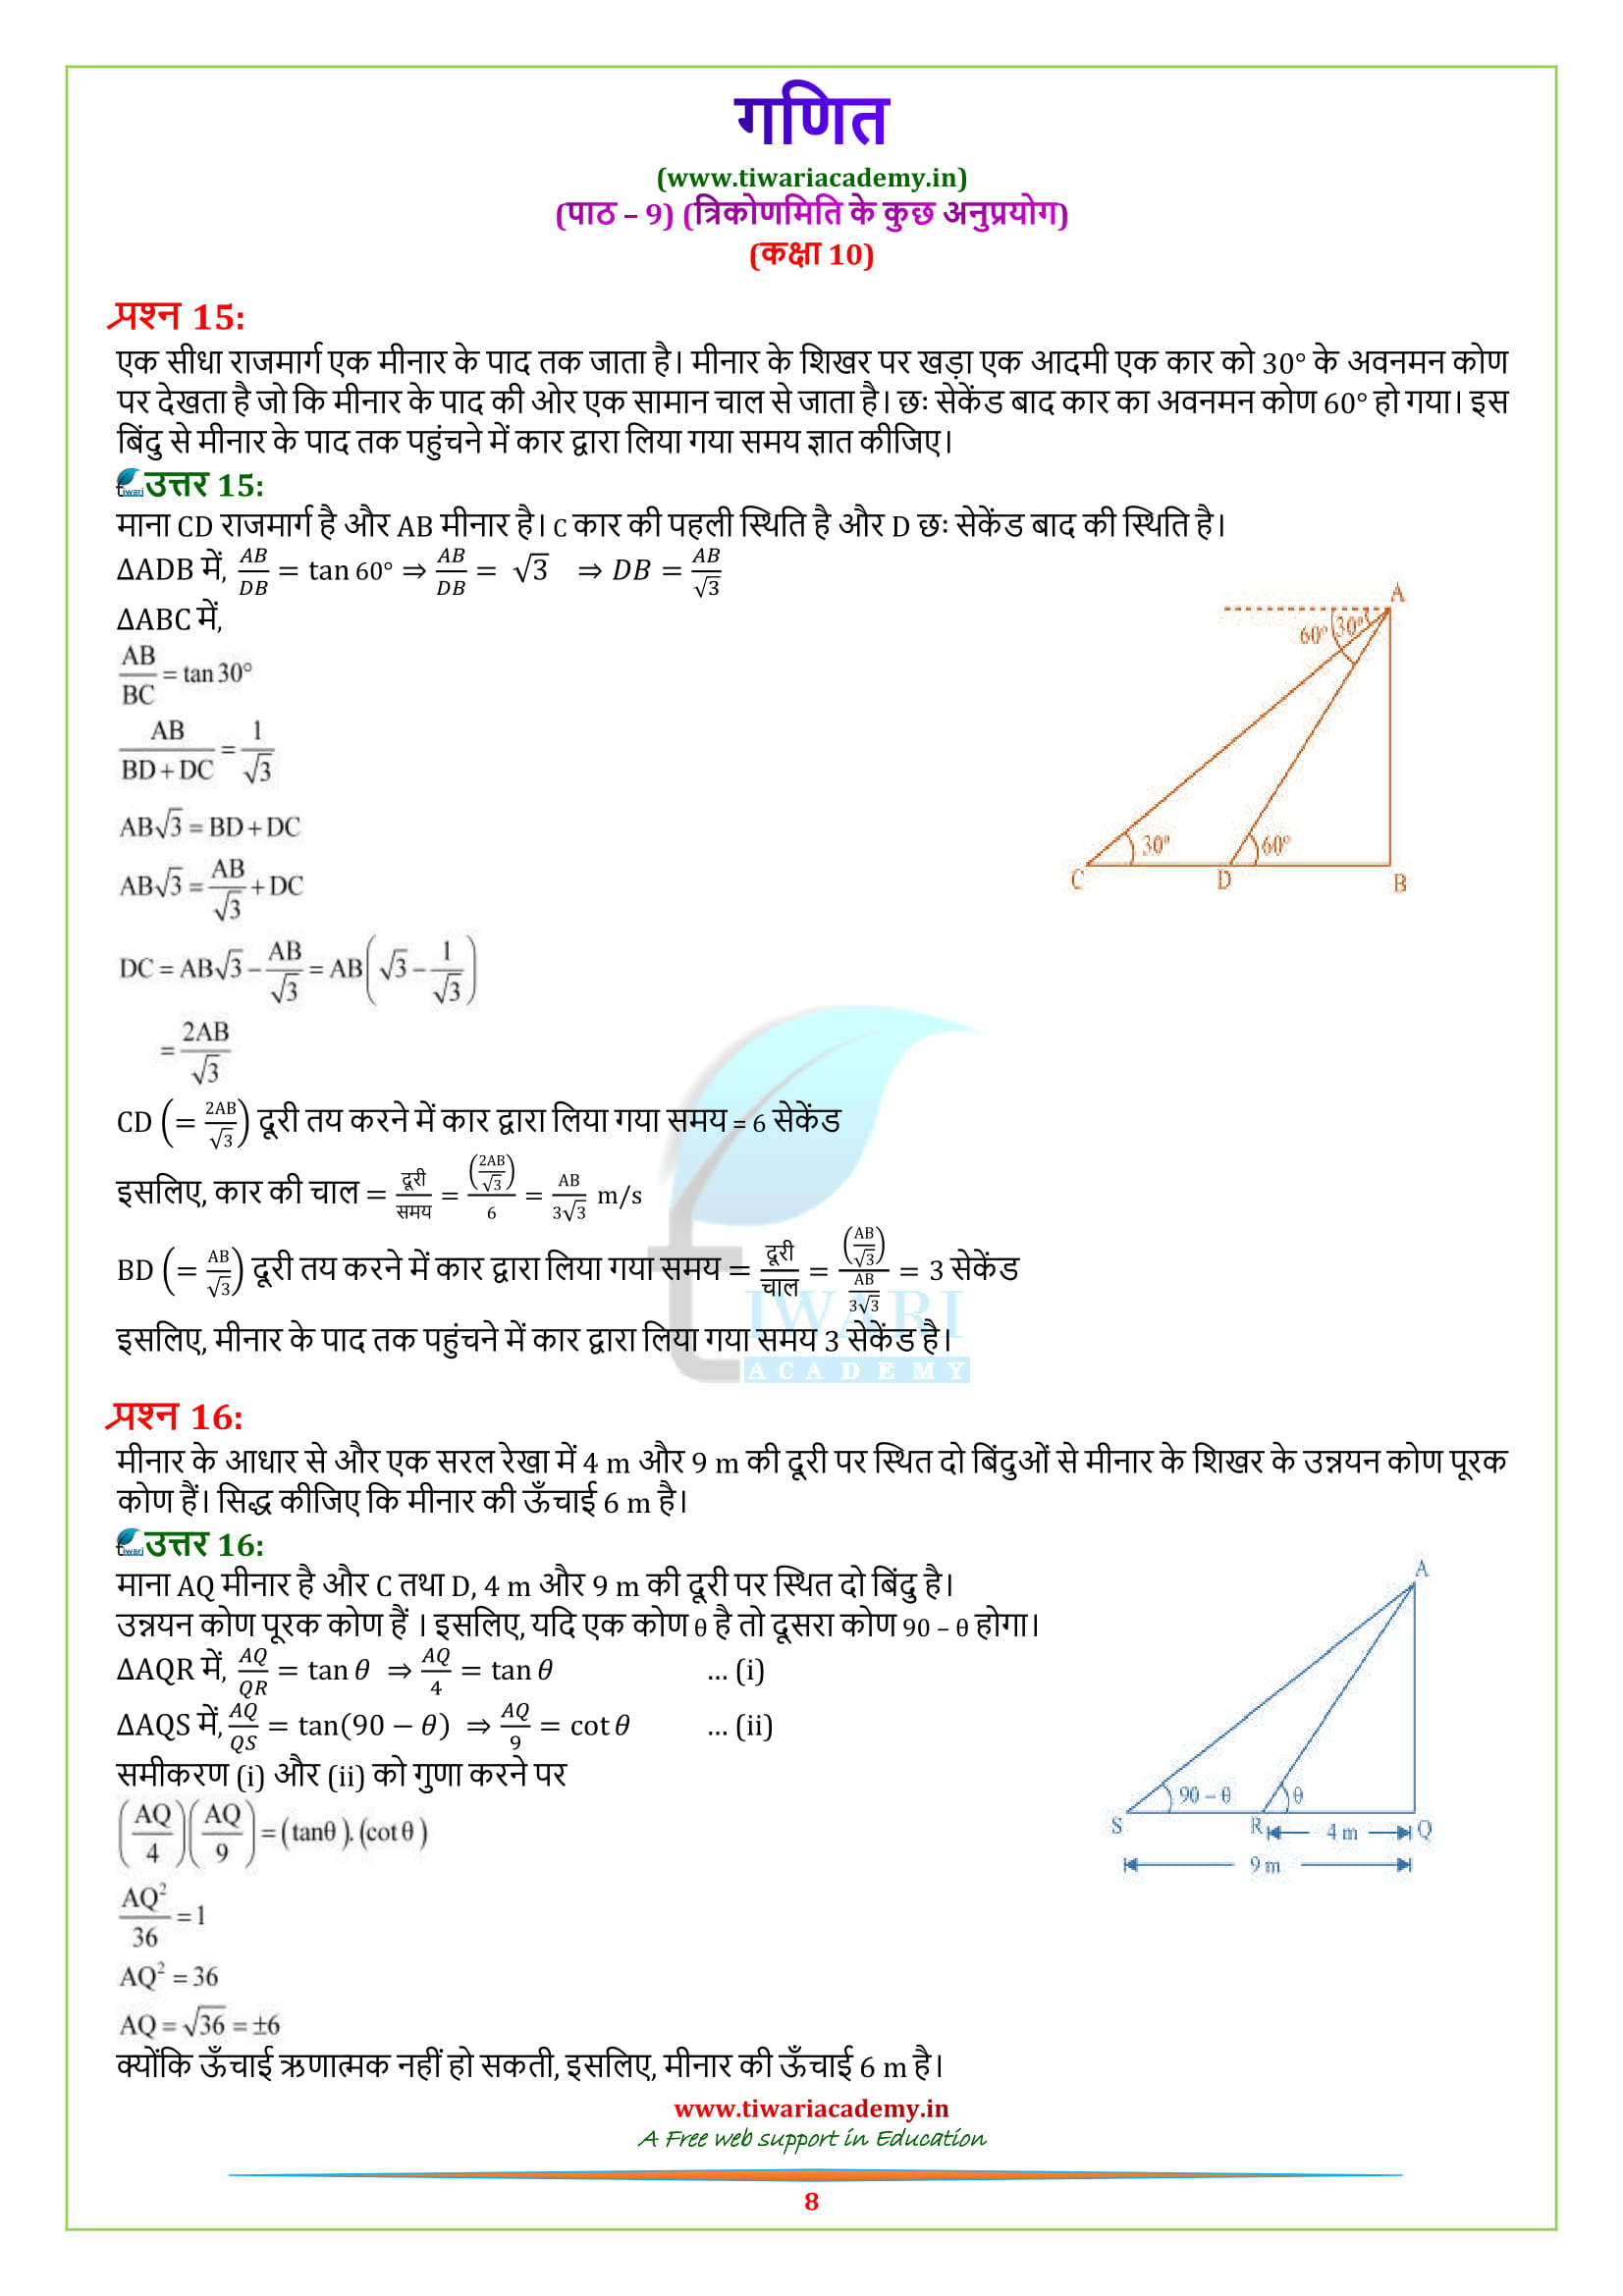 Class 10 Maths Exercise 9.1 question 15 and 16 solutions in hindi